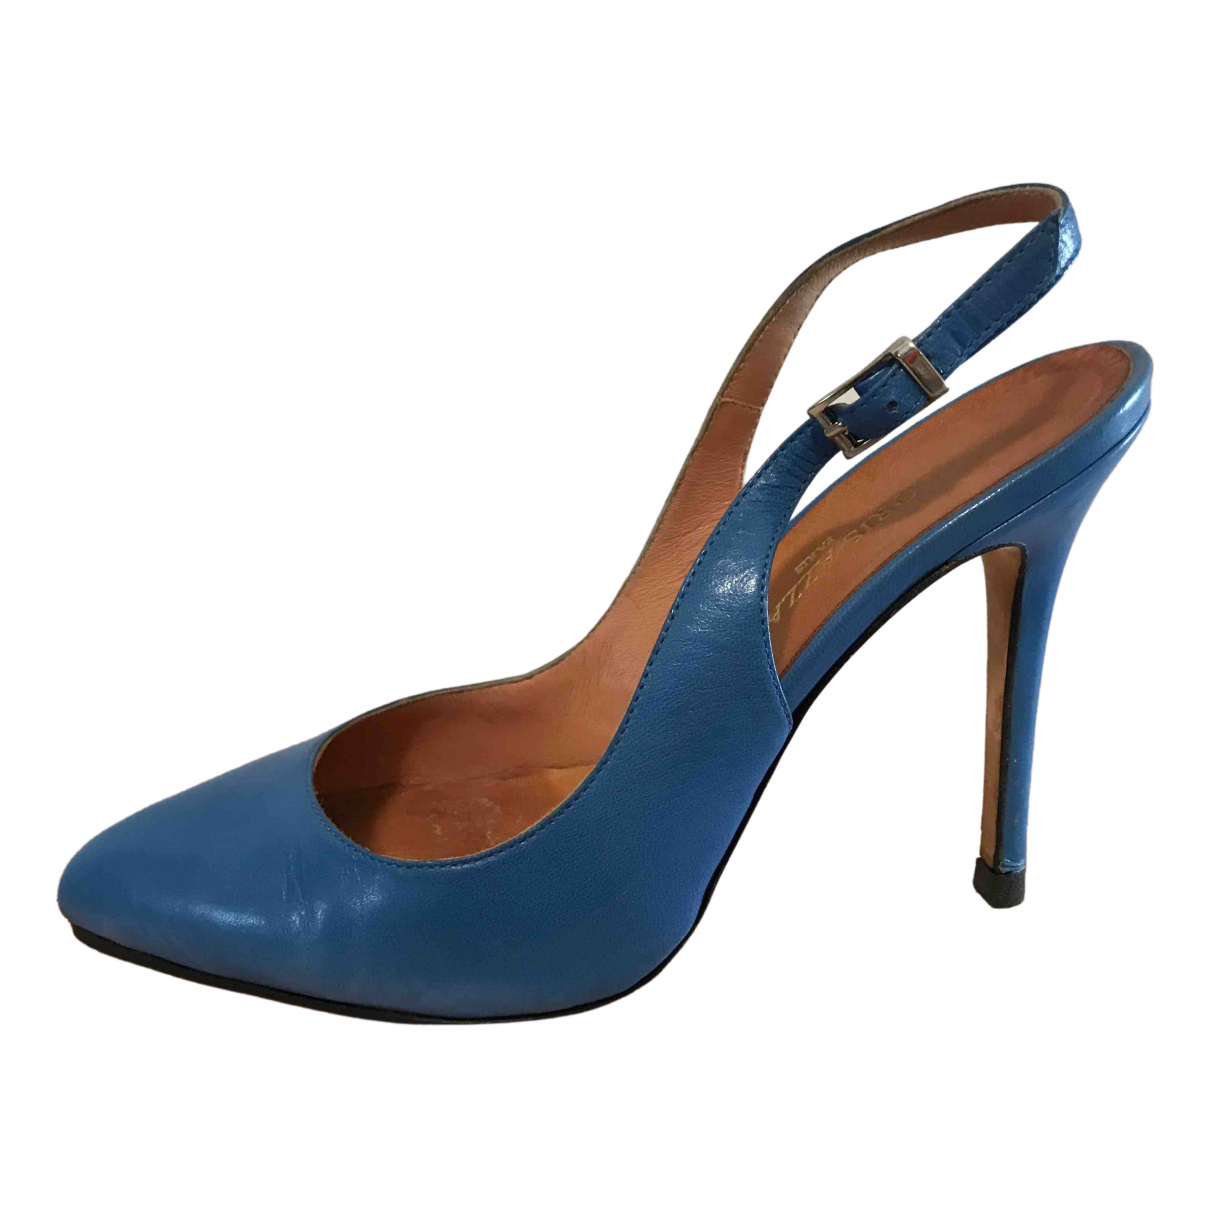 Loris Azzaro \N Blue Leather Heels for Women 35 EU